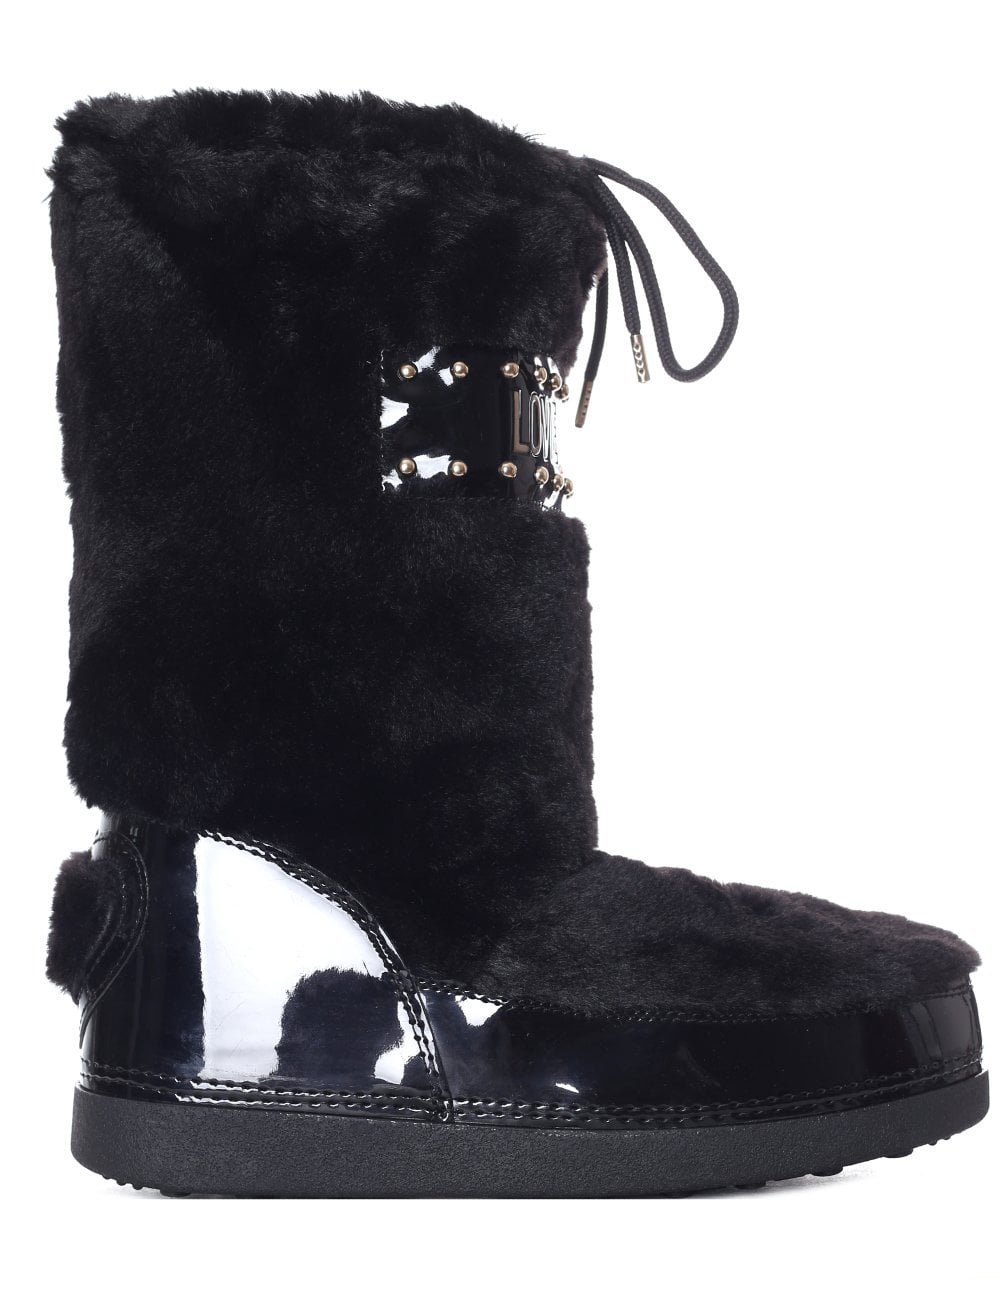 851de89a6 Love Moschino Faux Fur Snow Boot